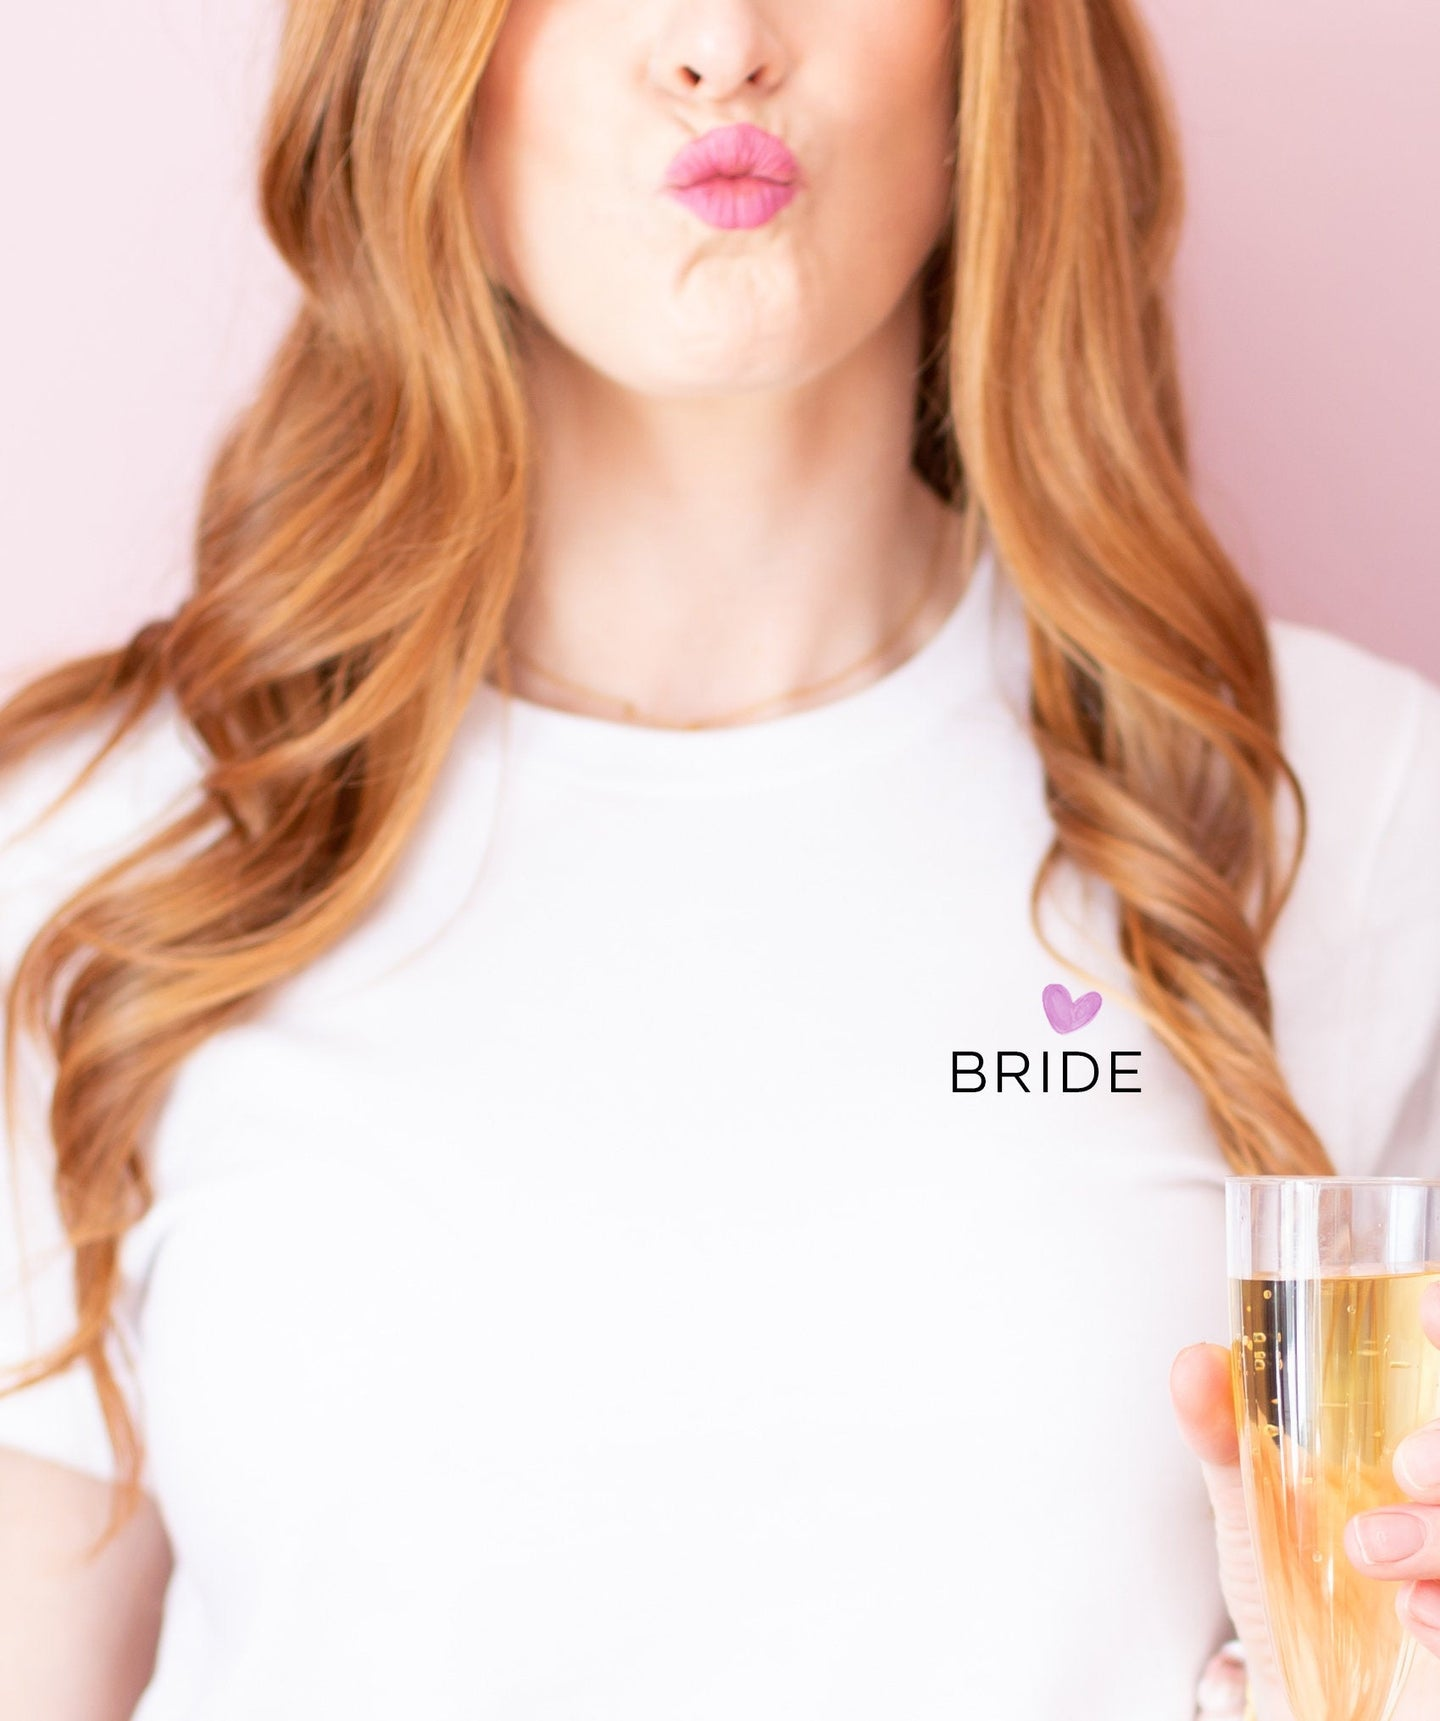 Bride Shirt Simple, Bride Tee, Heart, Wedding Shirt, Bride, Bridal Shower Gift, Bachelorette, Day of Wedding, Christmas Gift, Gifts under 25